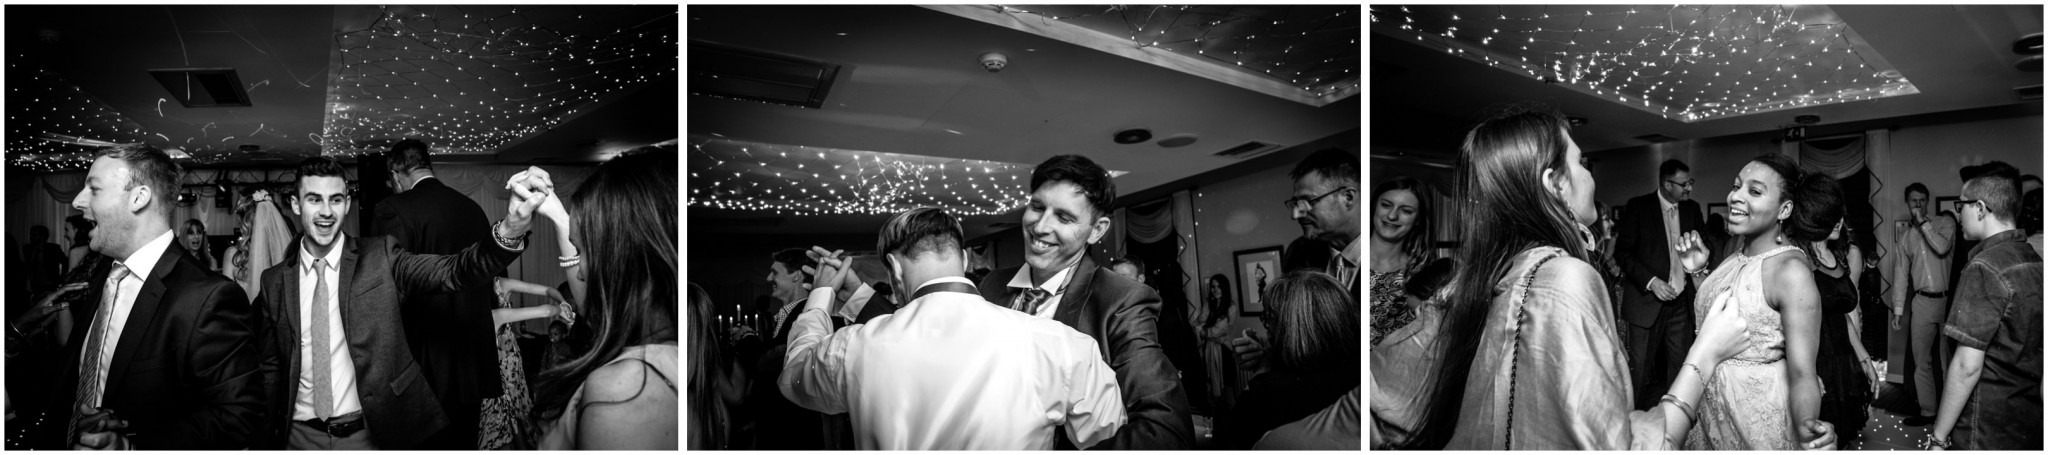 Highfield Park Wedding Photography Guest dancing at evening reception